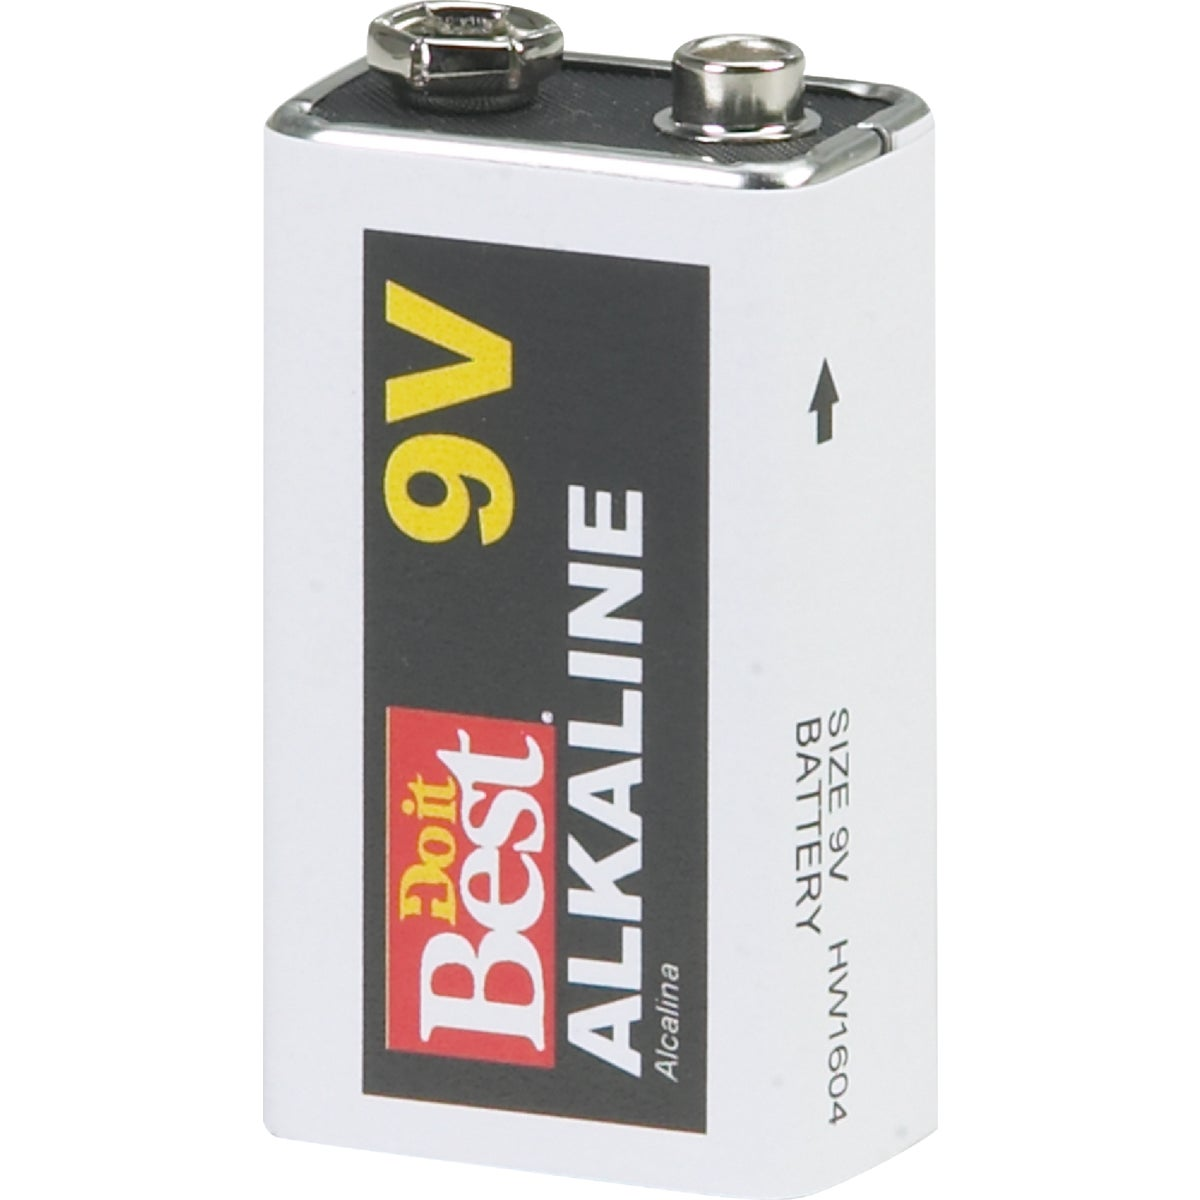 4PK DIB 9V BATTERY - DIBA1604-4 by Ray O Vac